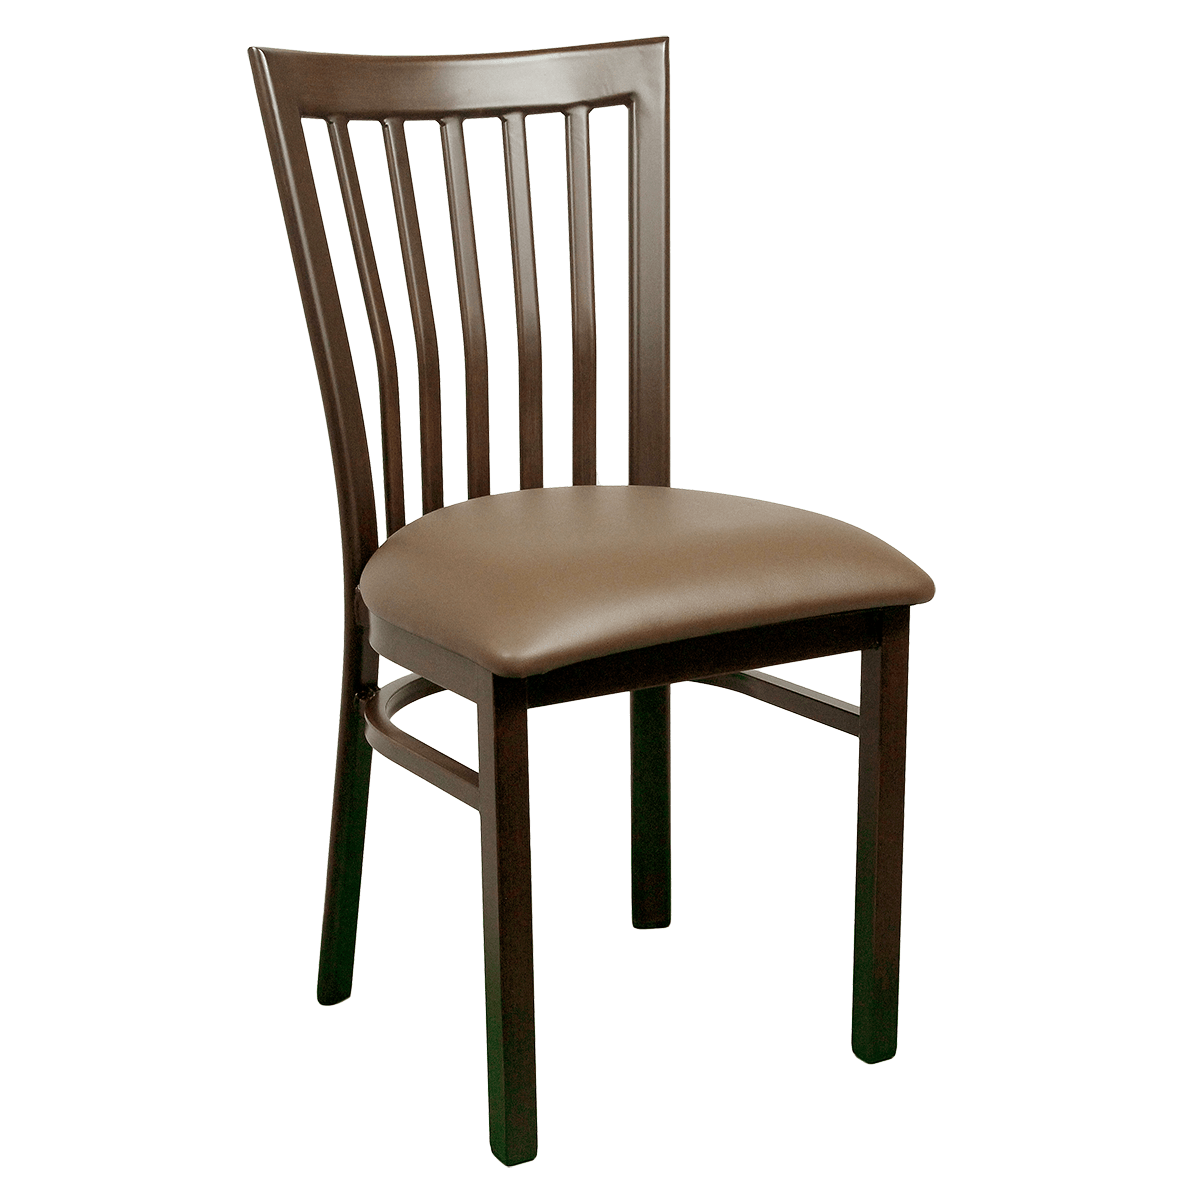 Metal Chair With Wood Seat Chairs Wood Look Metal Ladder Back Chair